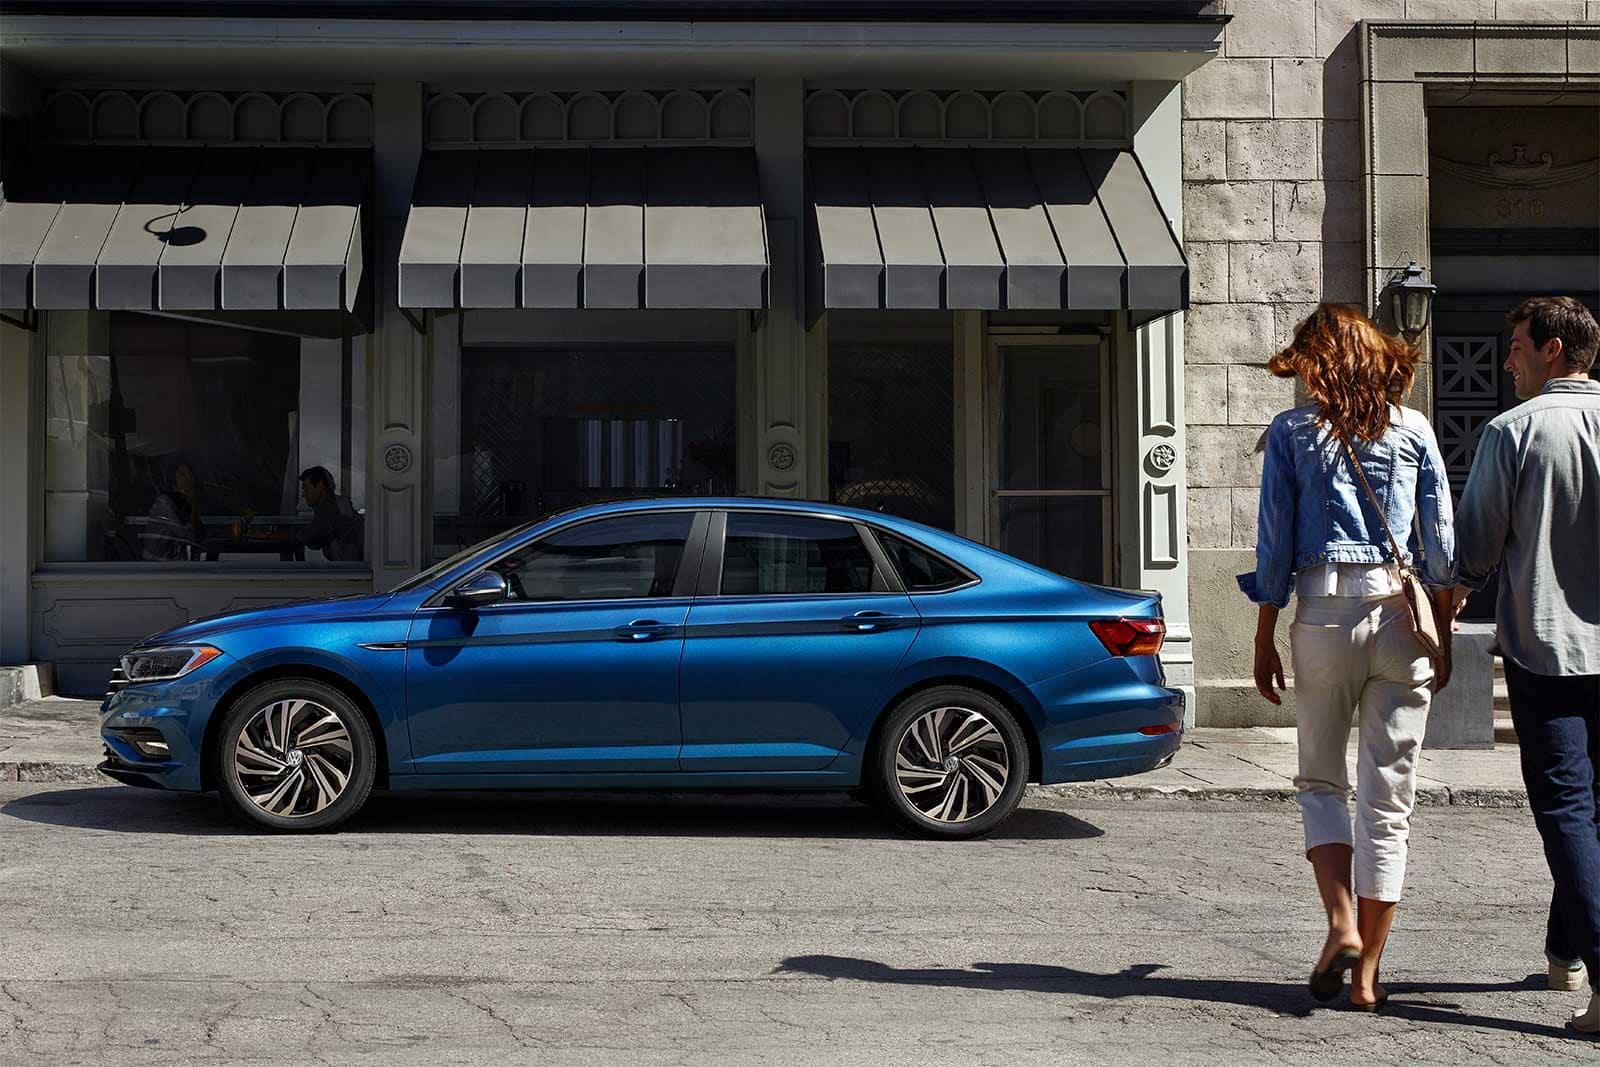 New 2019 Jetta Launch Event | Stohlman Volkswagen